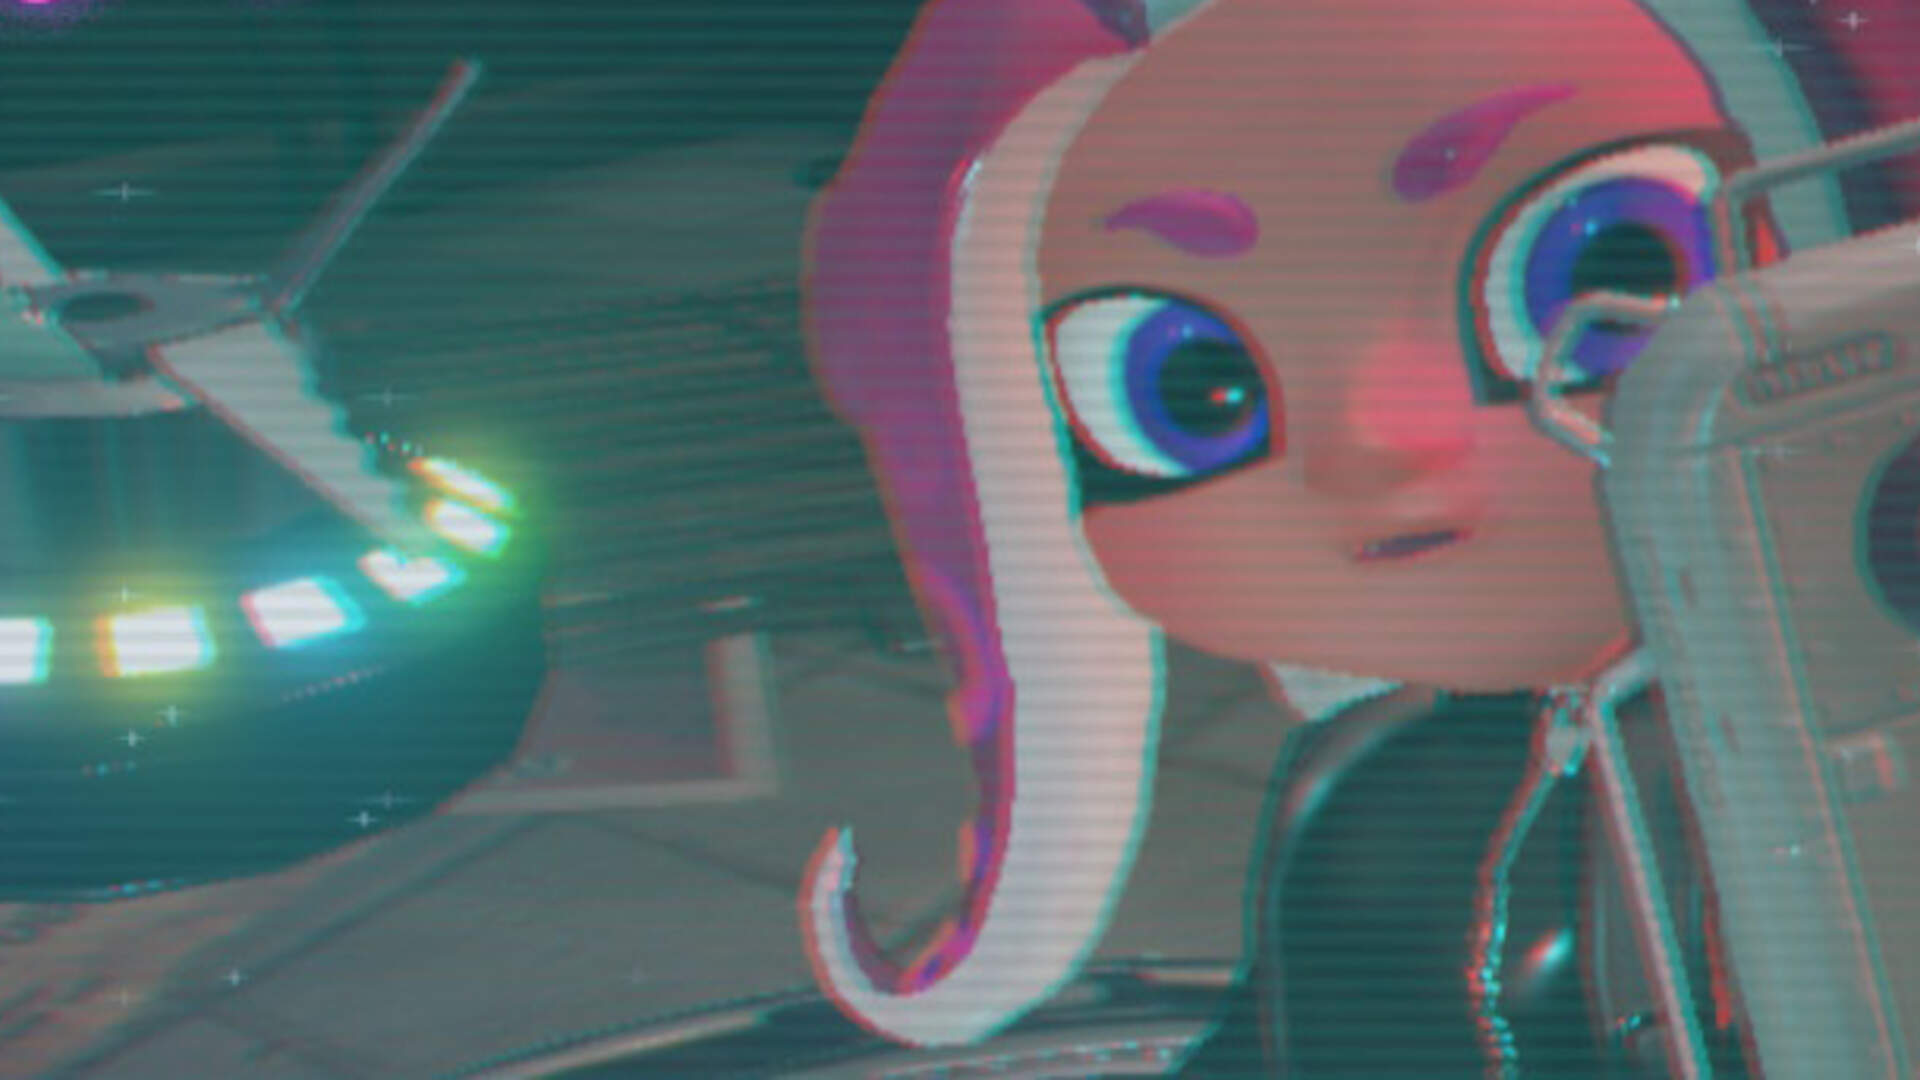 Splatoon 2's Octo Expansion is Kicking My Ass